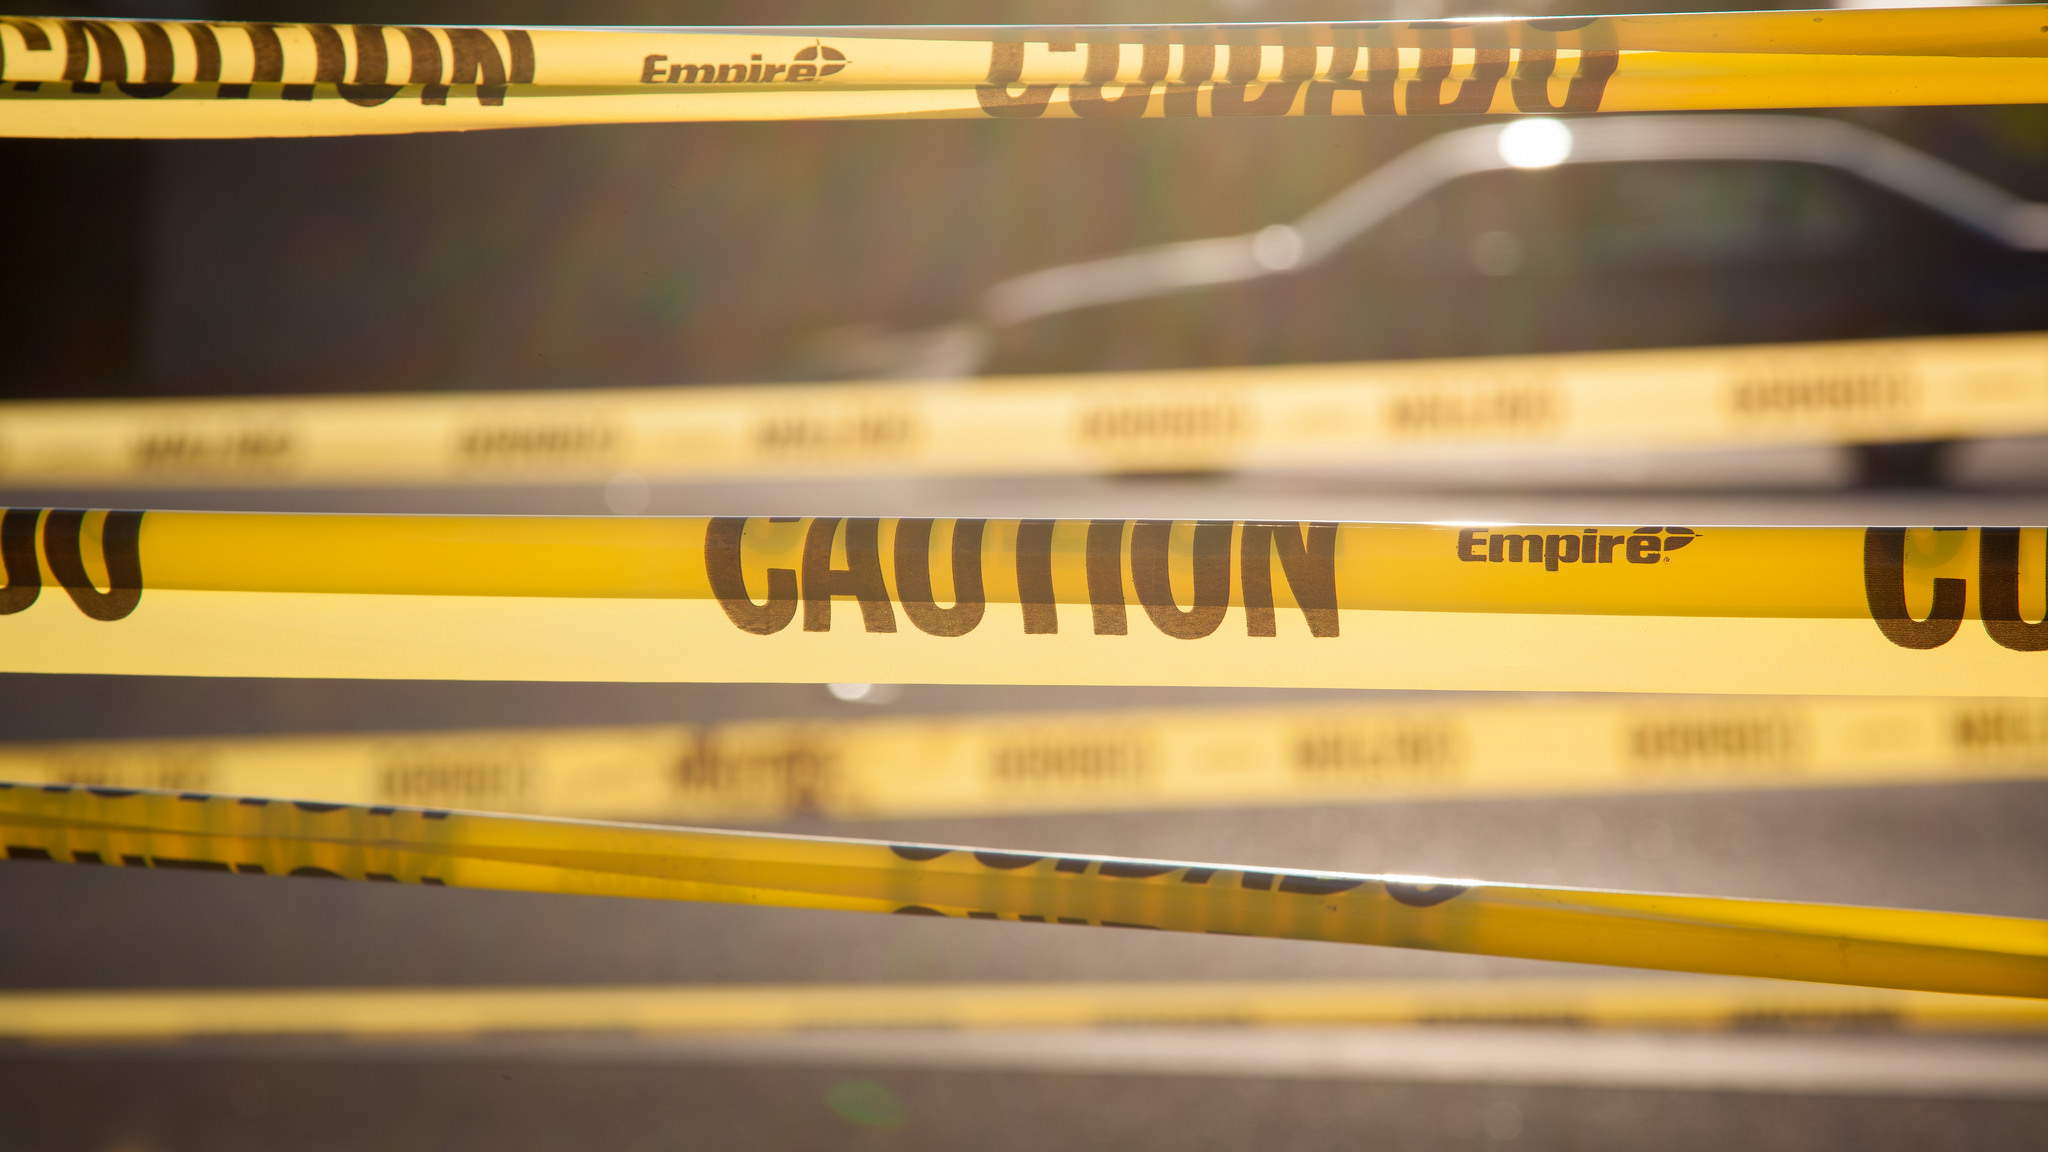 Certified Criminal Law Specialist - yellow police tape across crime scene